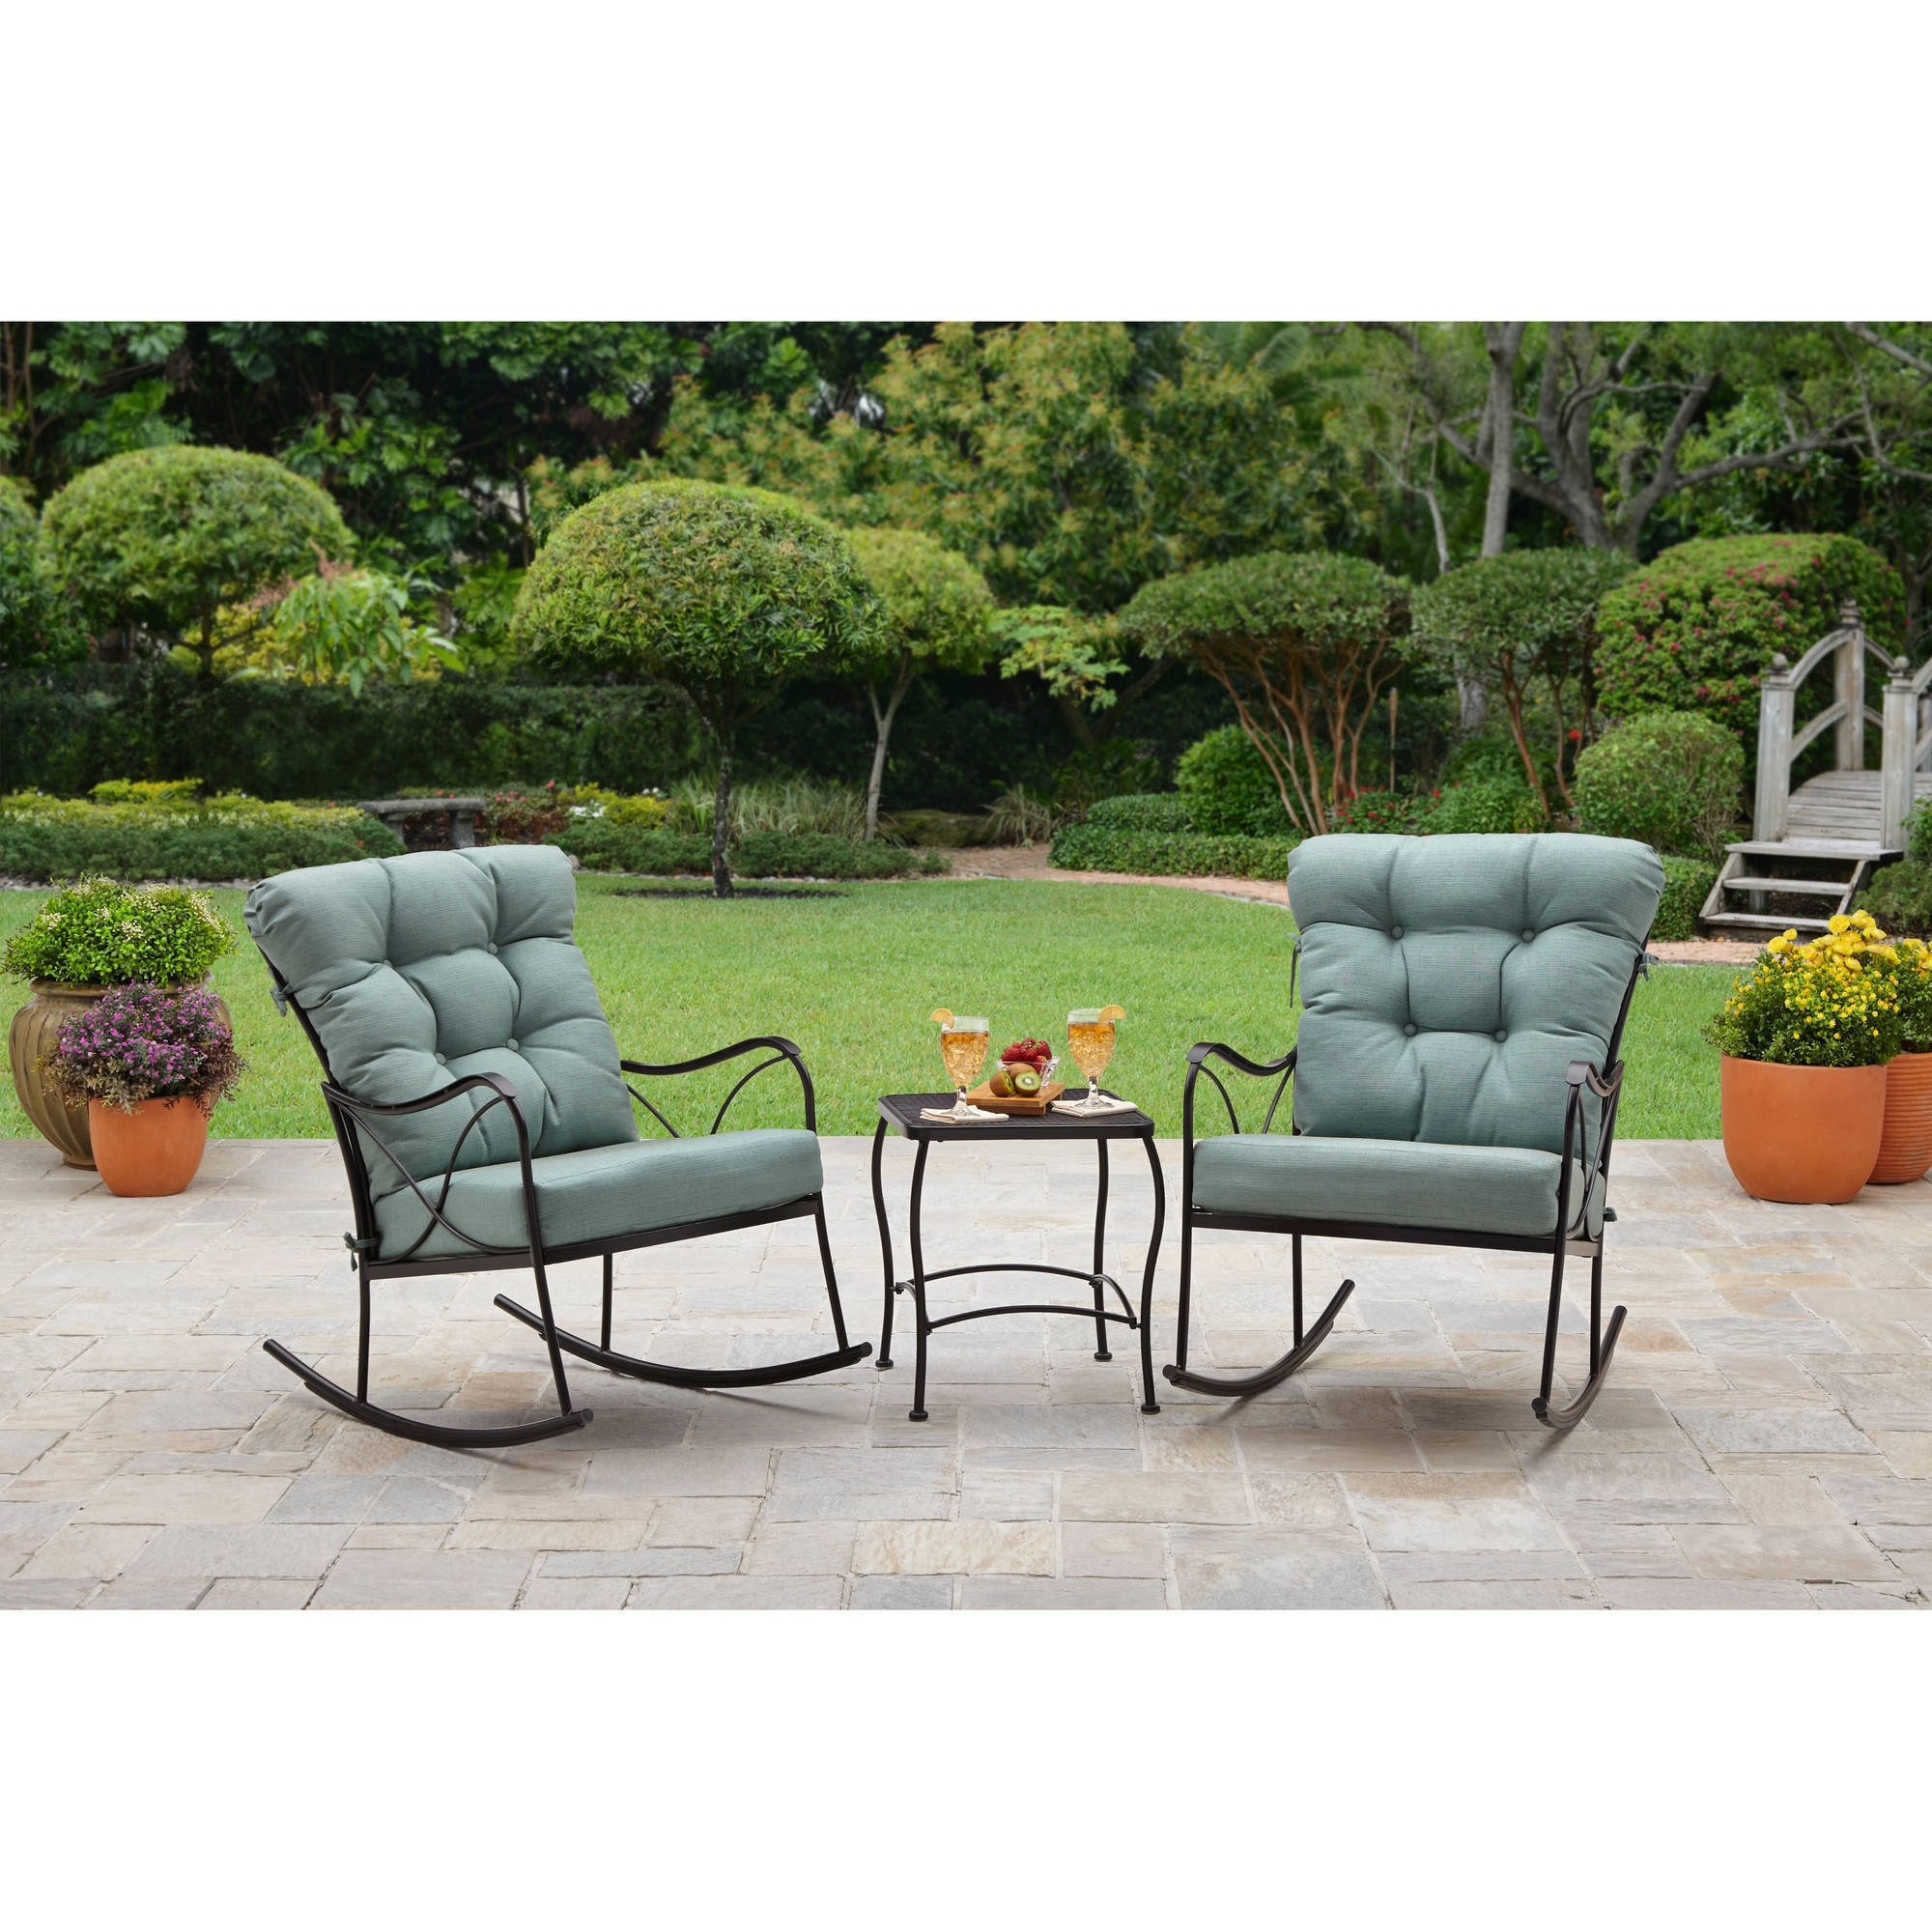 Better Homes And Gardens Seacliff 3 Piece Rocking Chair Bistro Set Regarding Patio Rocking Chairs Sets (View 2 of 15)